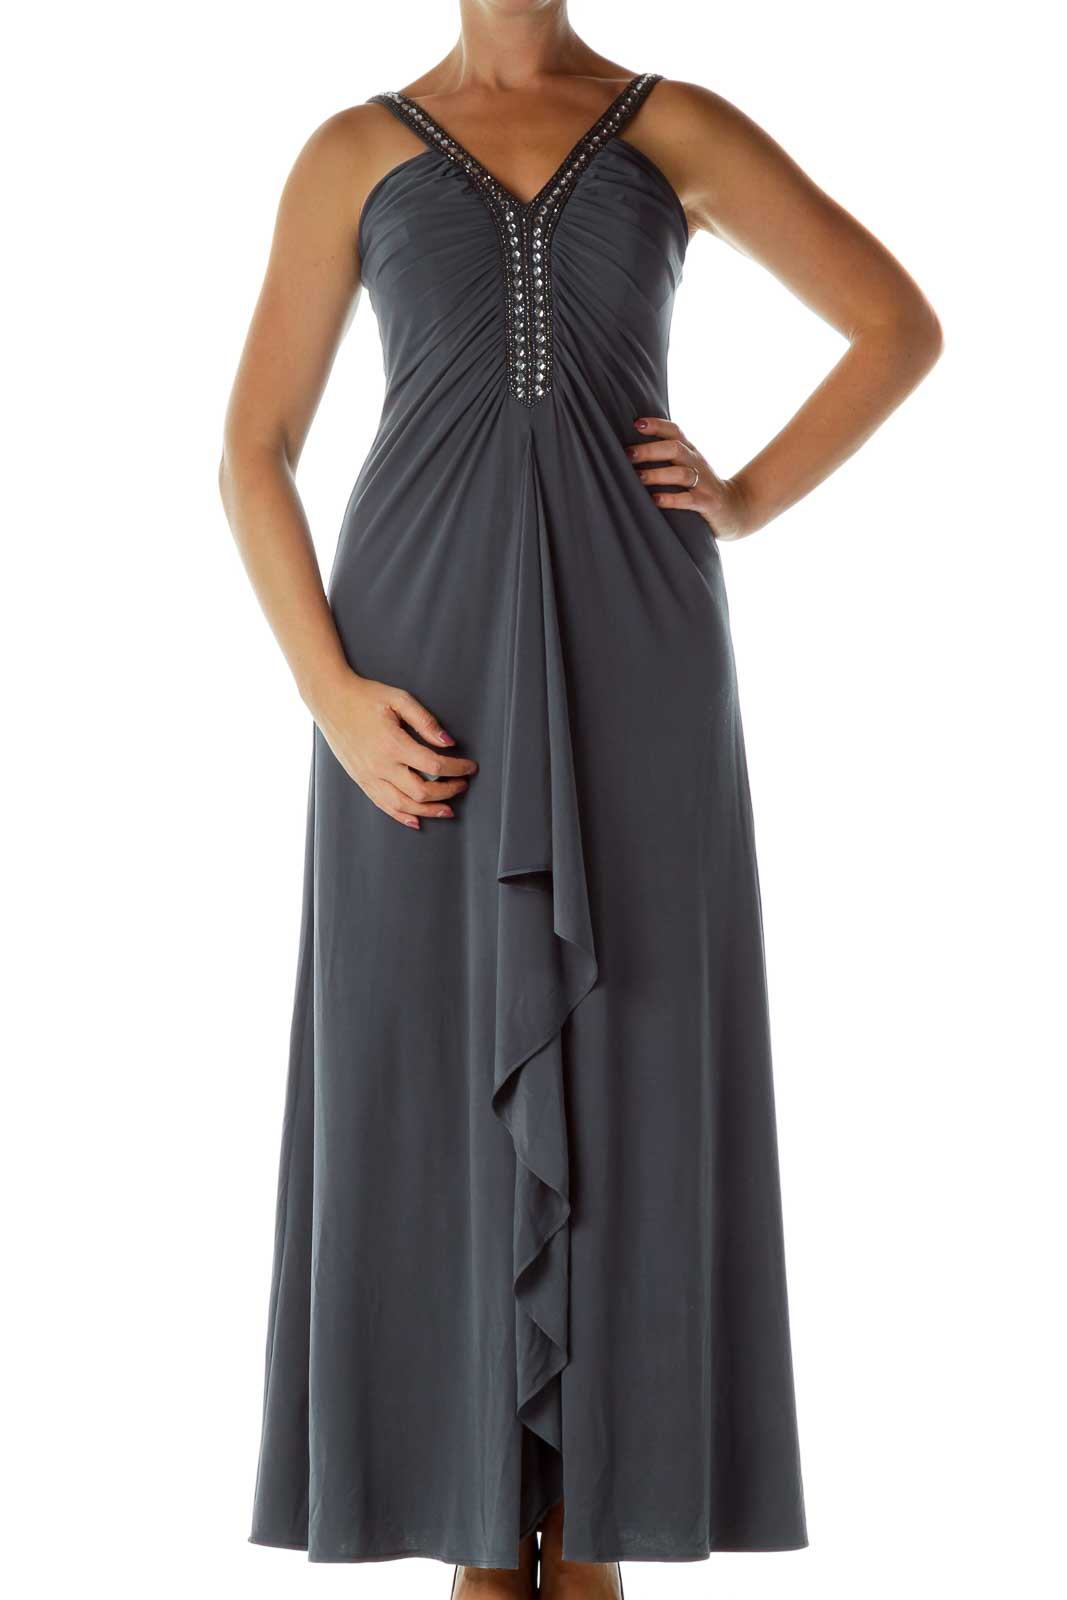 Gray Beaded Evening Dress Front